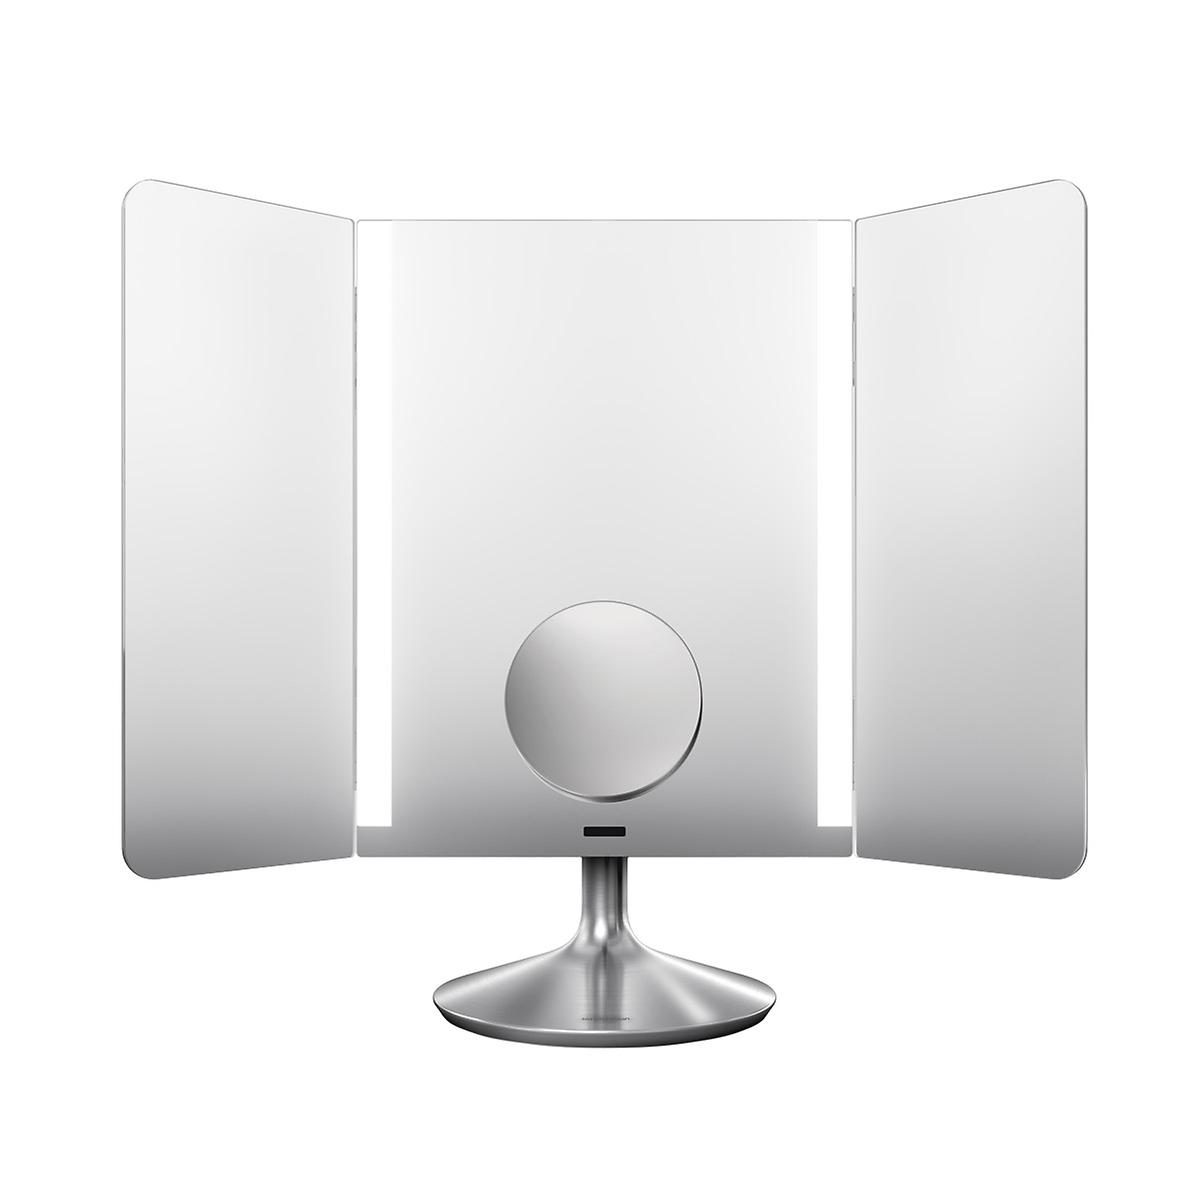 Vanity The Store Sign : Simplehuman wide view vanity pro makeup mirror the